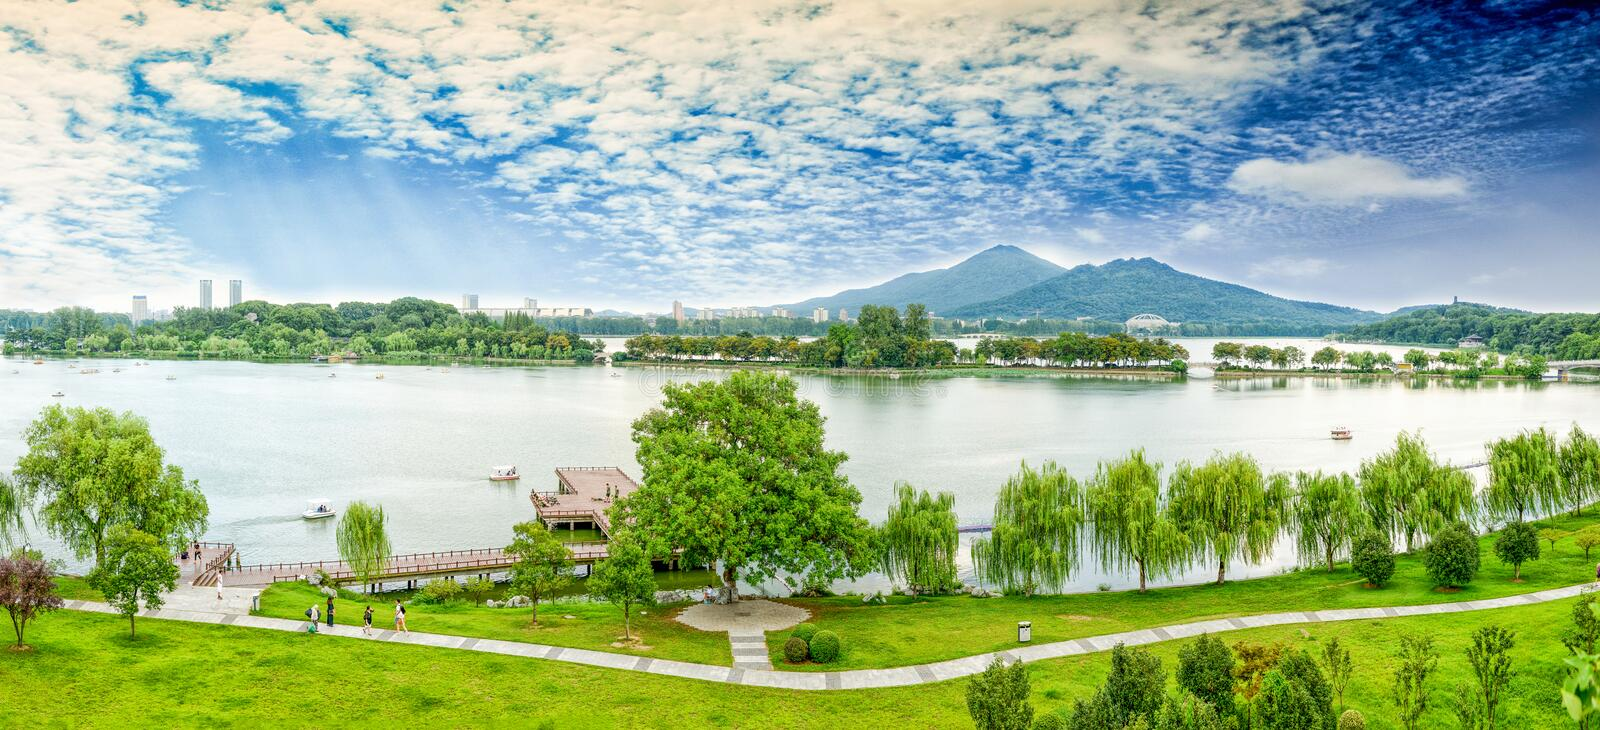 Nanjing Xuanwu Lake. Xuanwu Lake in Nanjing City, is at the foot of Purple Mountain National Scenic Area, China's largest imperial garden of the lake stock photography